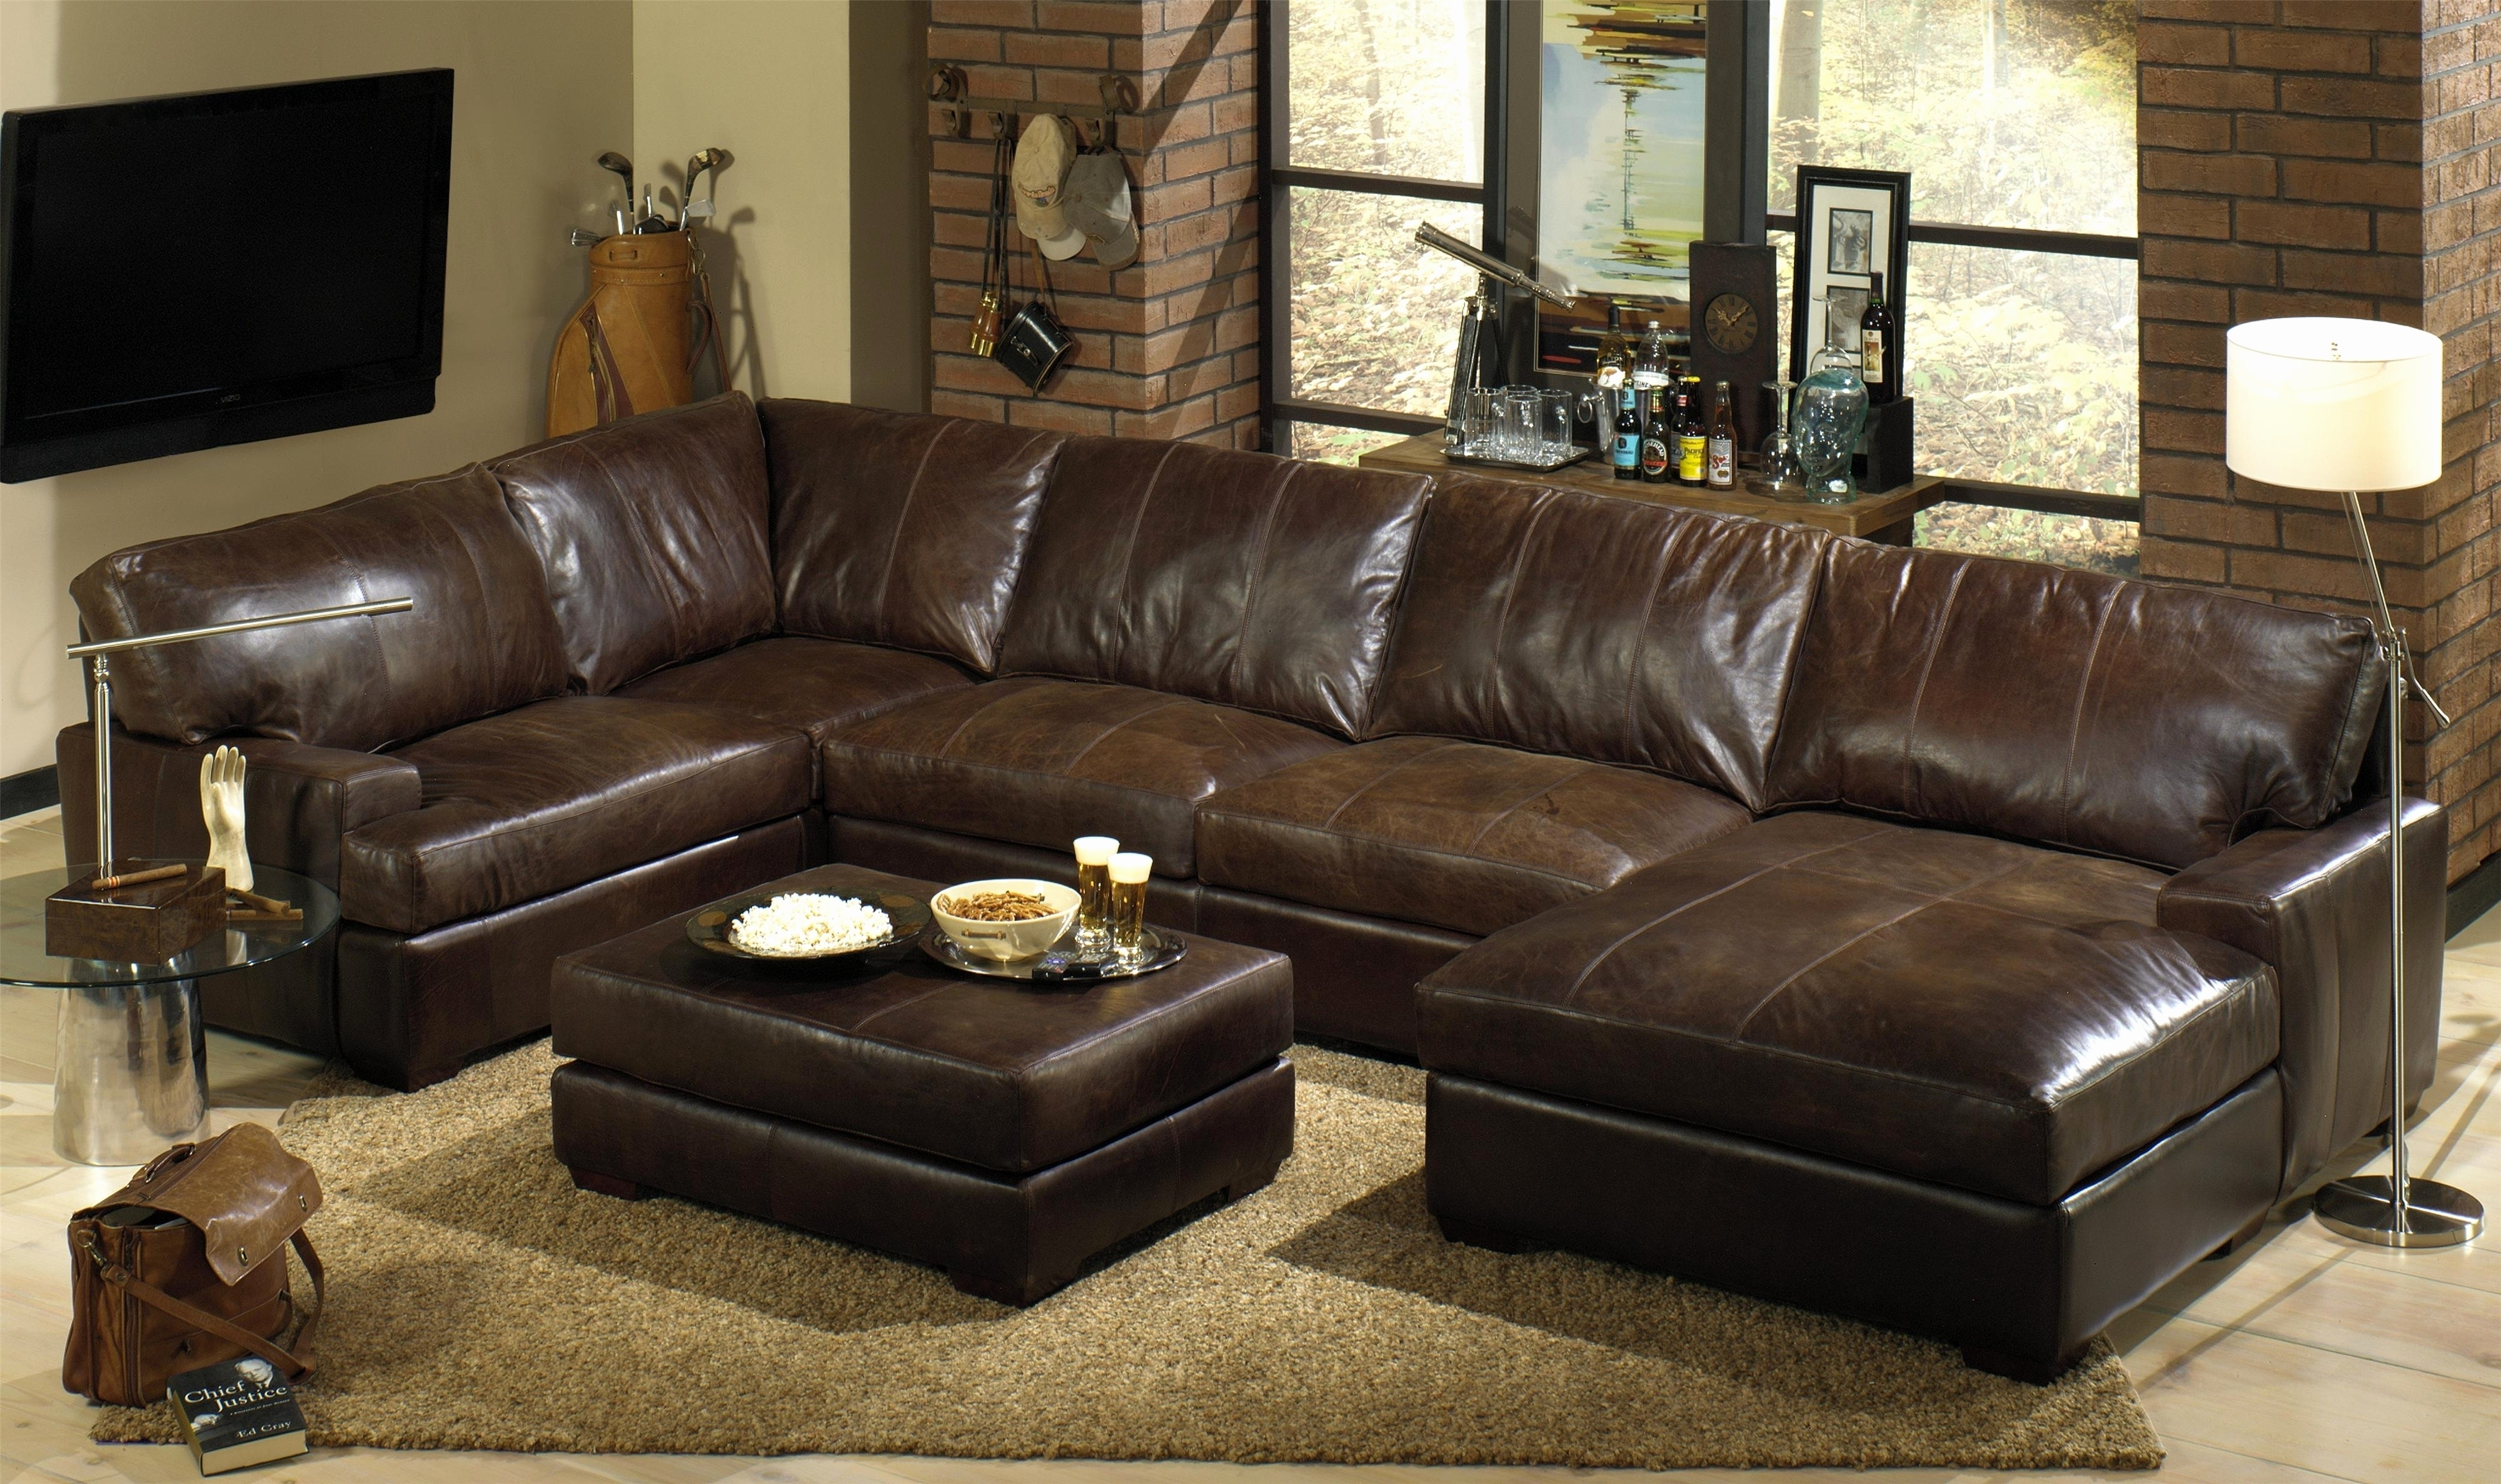 Sectional Sofa : All Leather Couch Leather Furniture Luxury Leather Within Chocolate Brown Sectional Sofas (View 9 of 10)